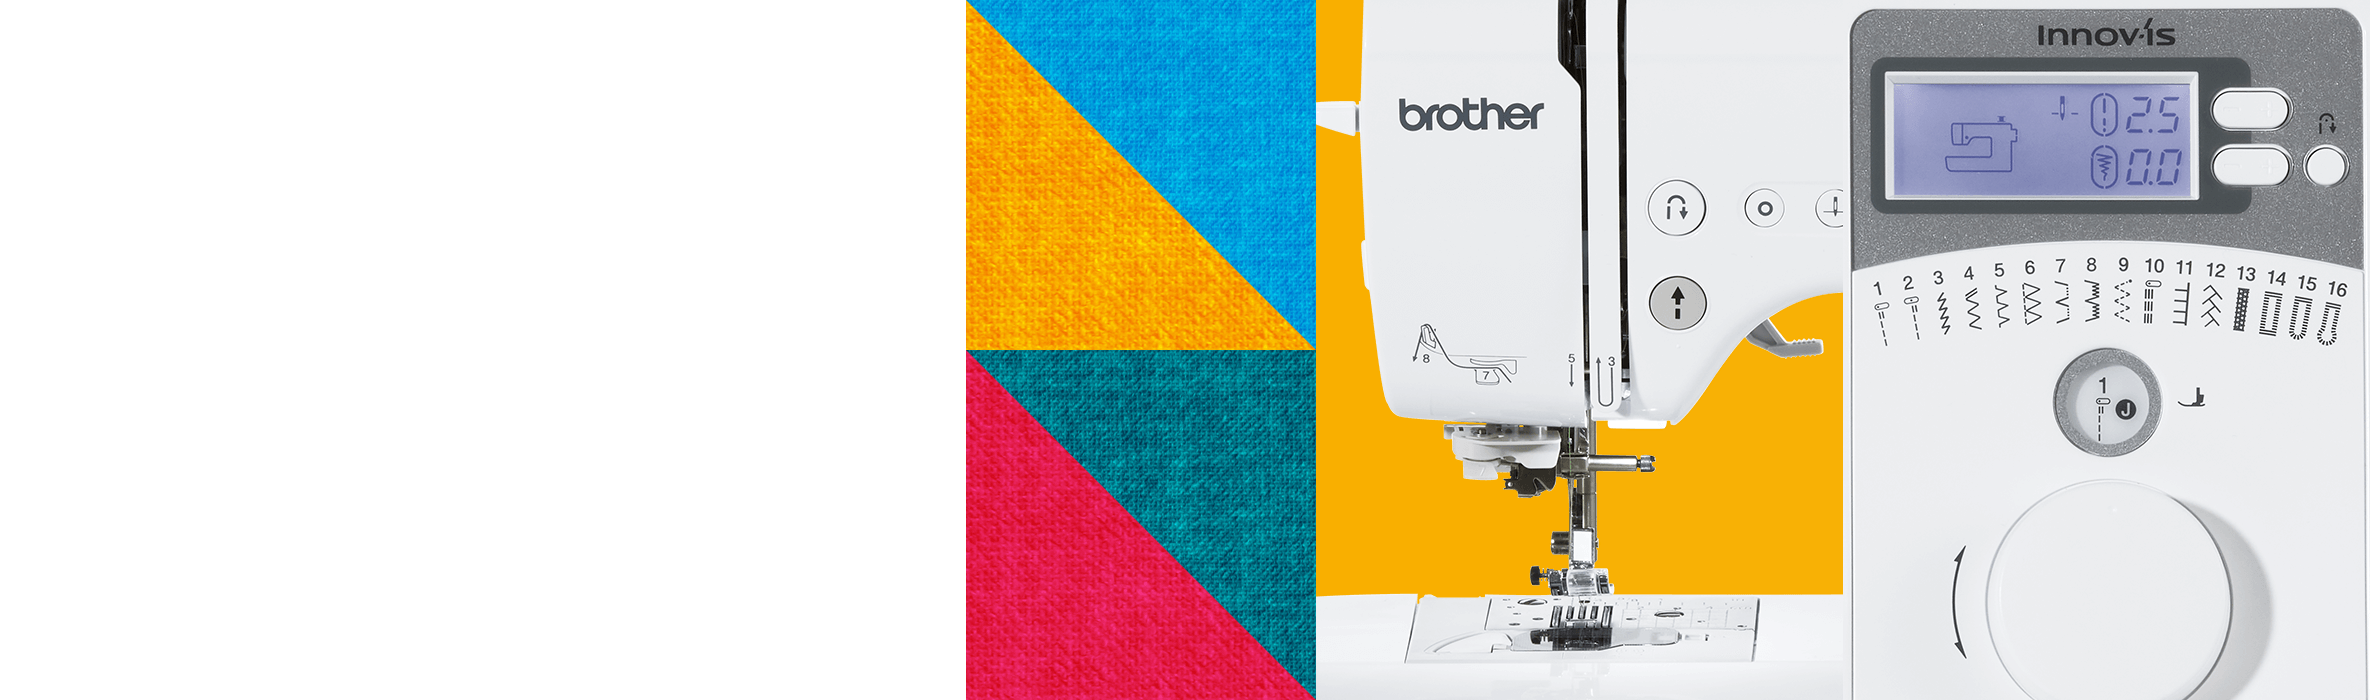 Close up shots of a brother sewing machine